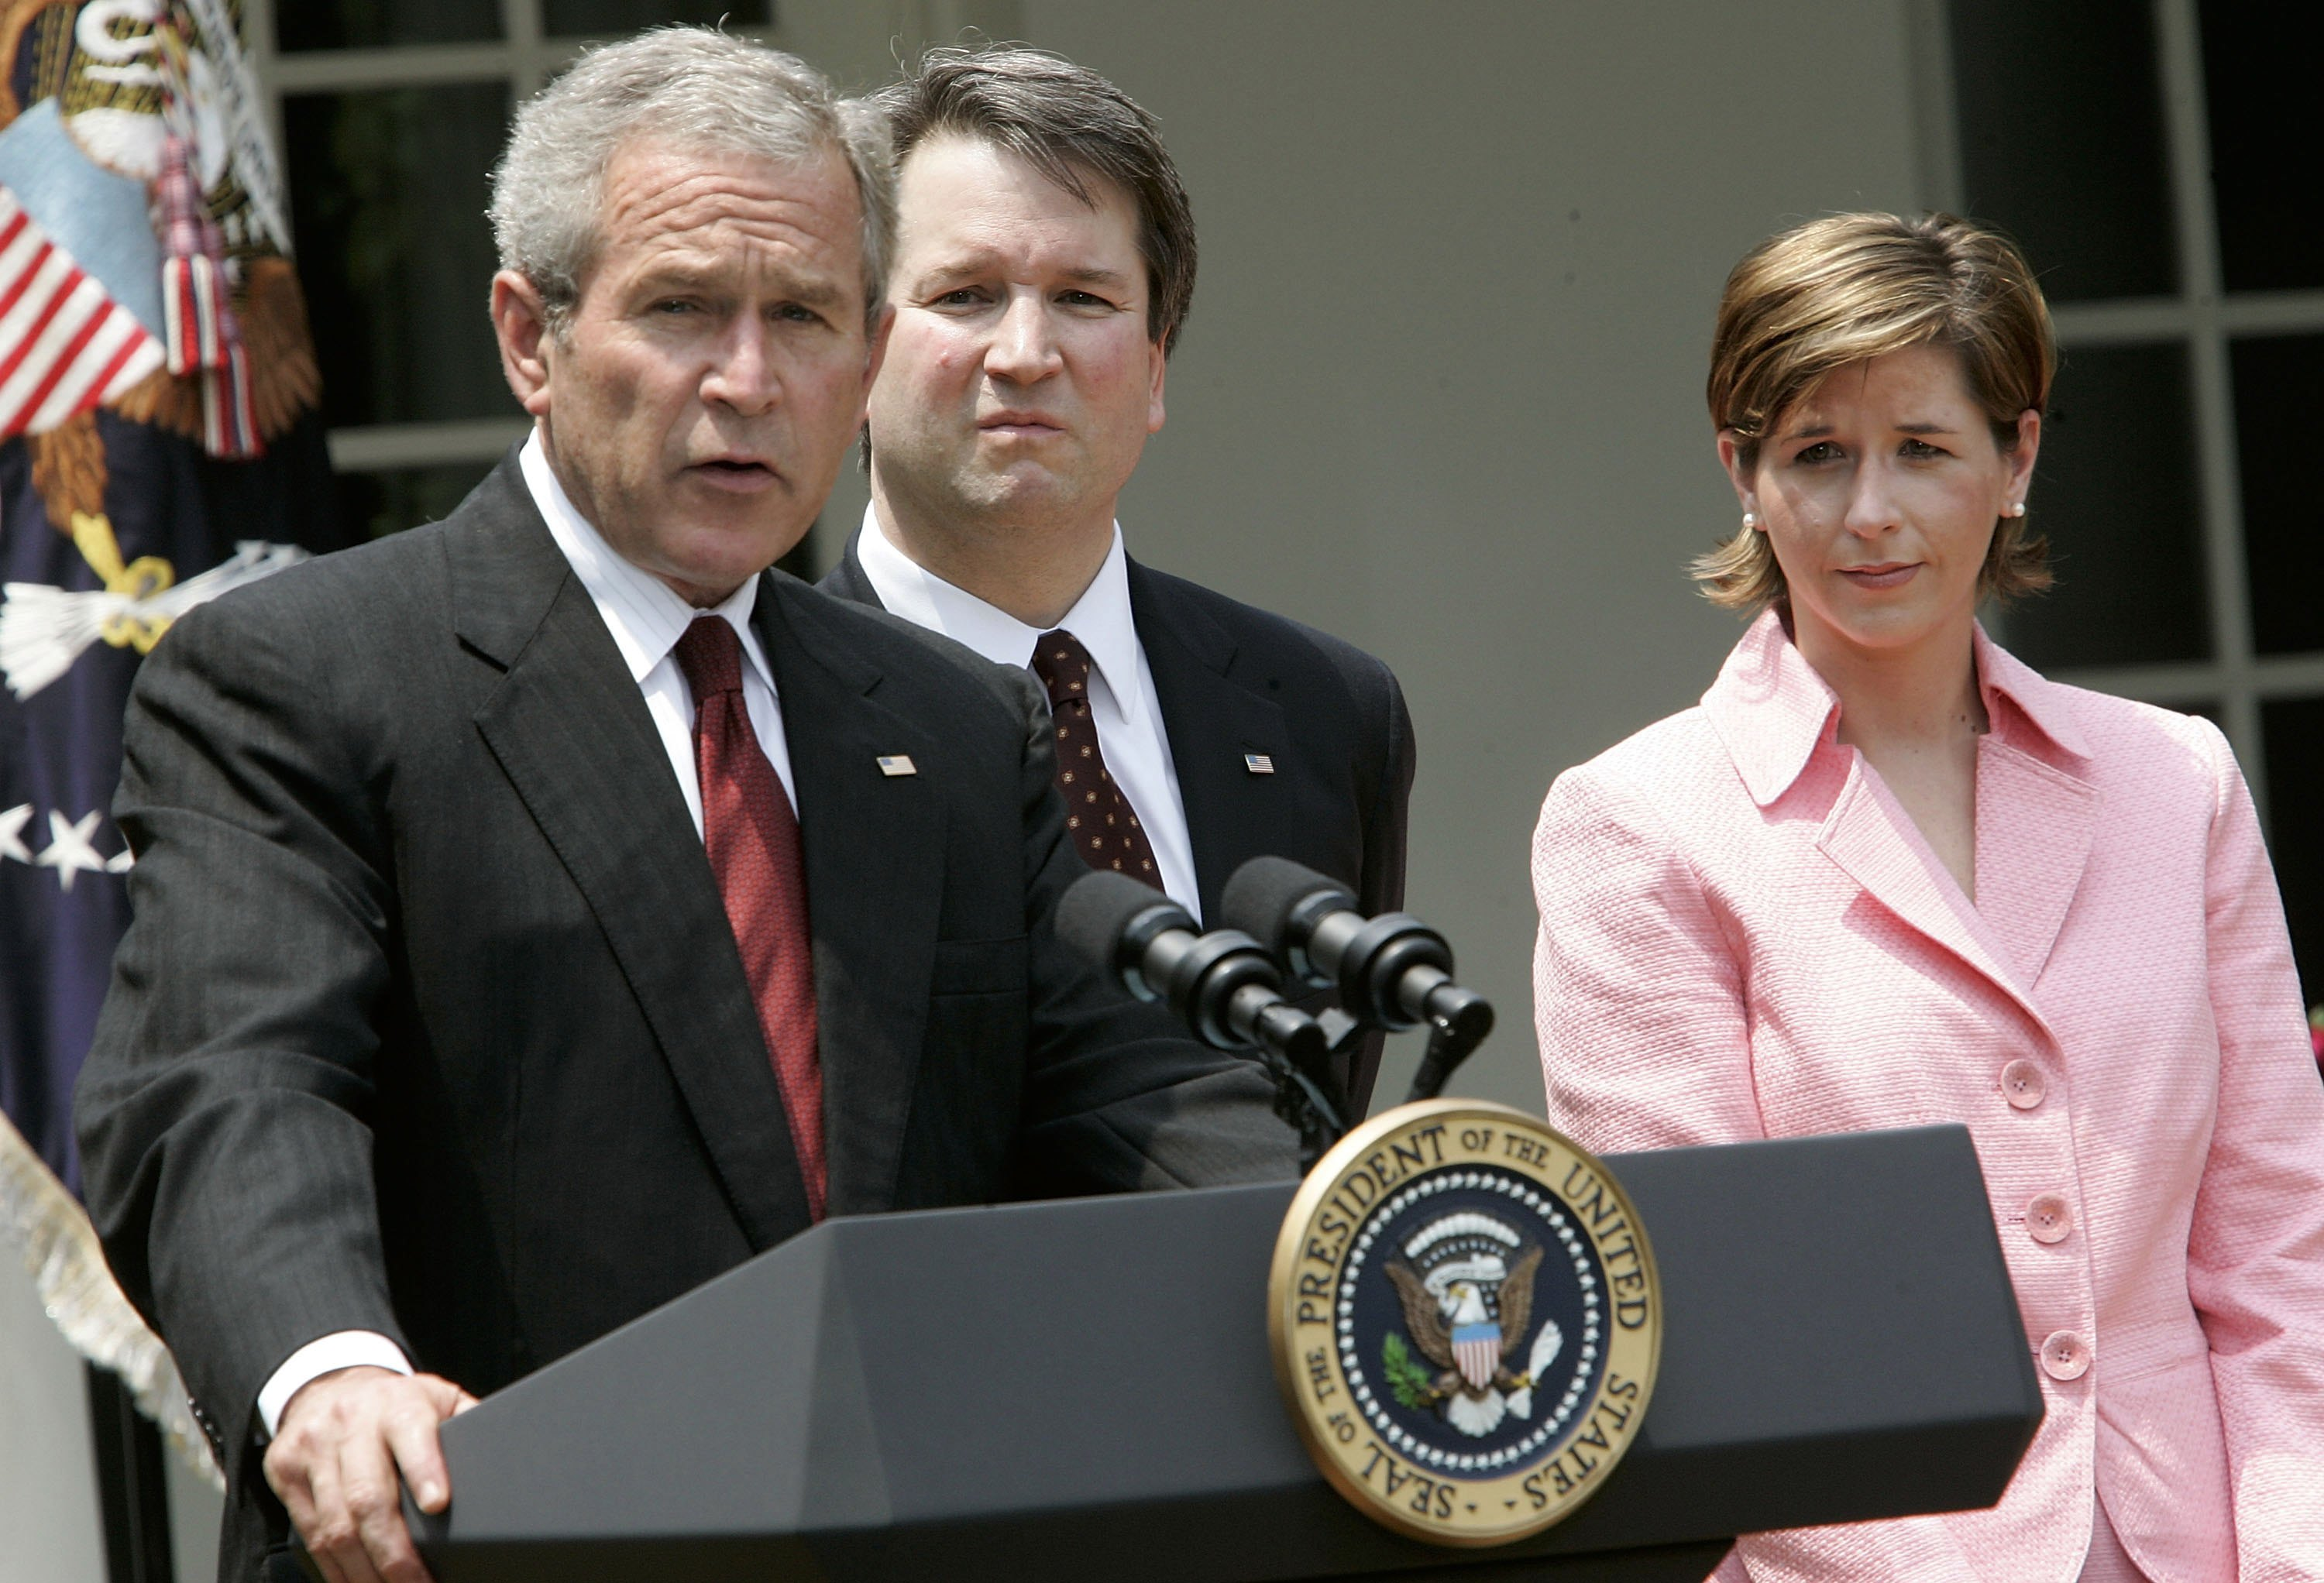 President George W. Bush speaks at a Rose Garden ceremony as Brett and Ashley Kavanaugh look on in June 2006. (Alex Wong/Getty Images)